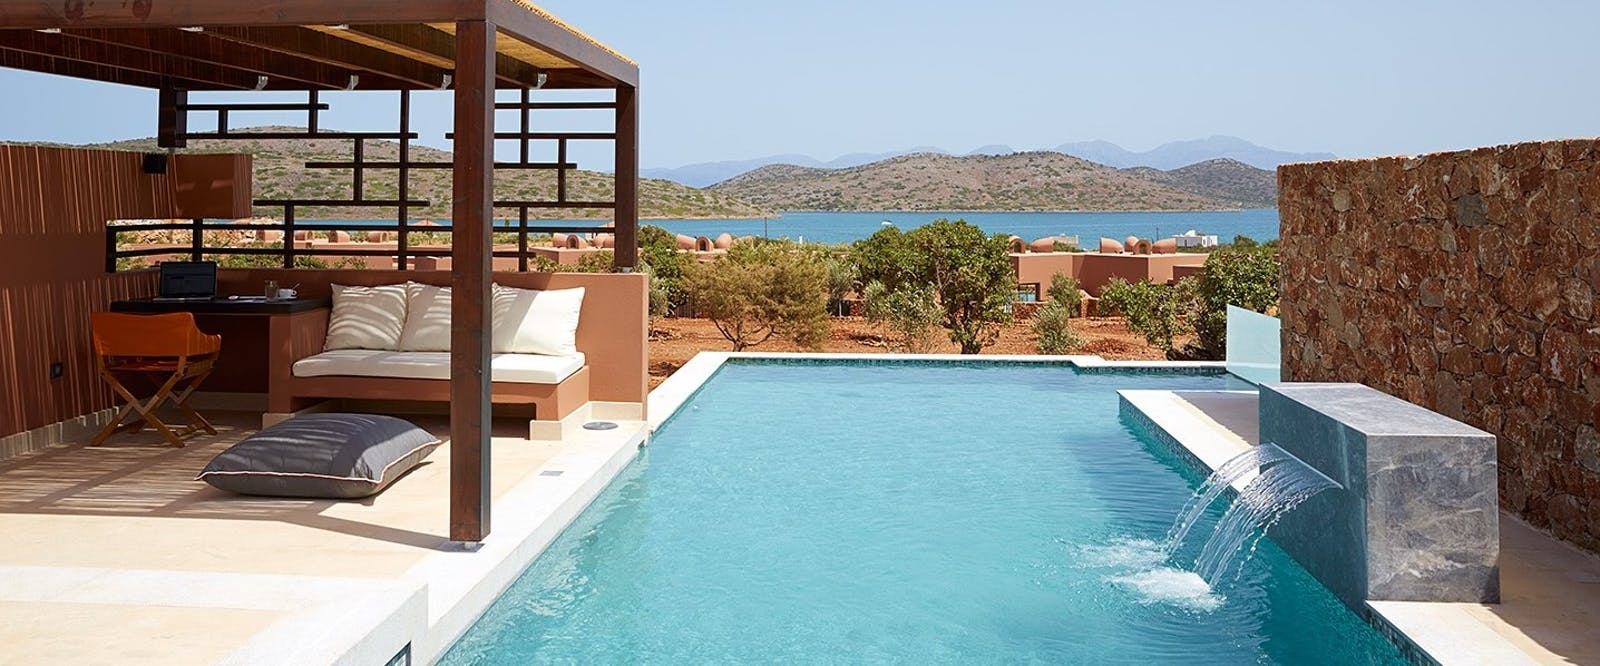 Pool Area at Domes of Elounda, Autograph Collection, Crete, Greece